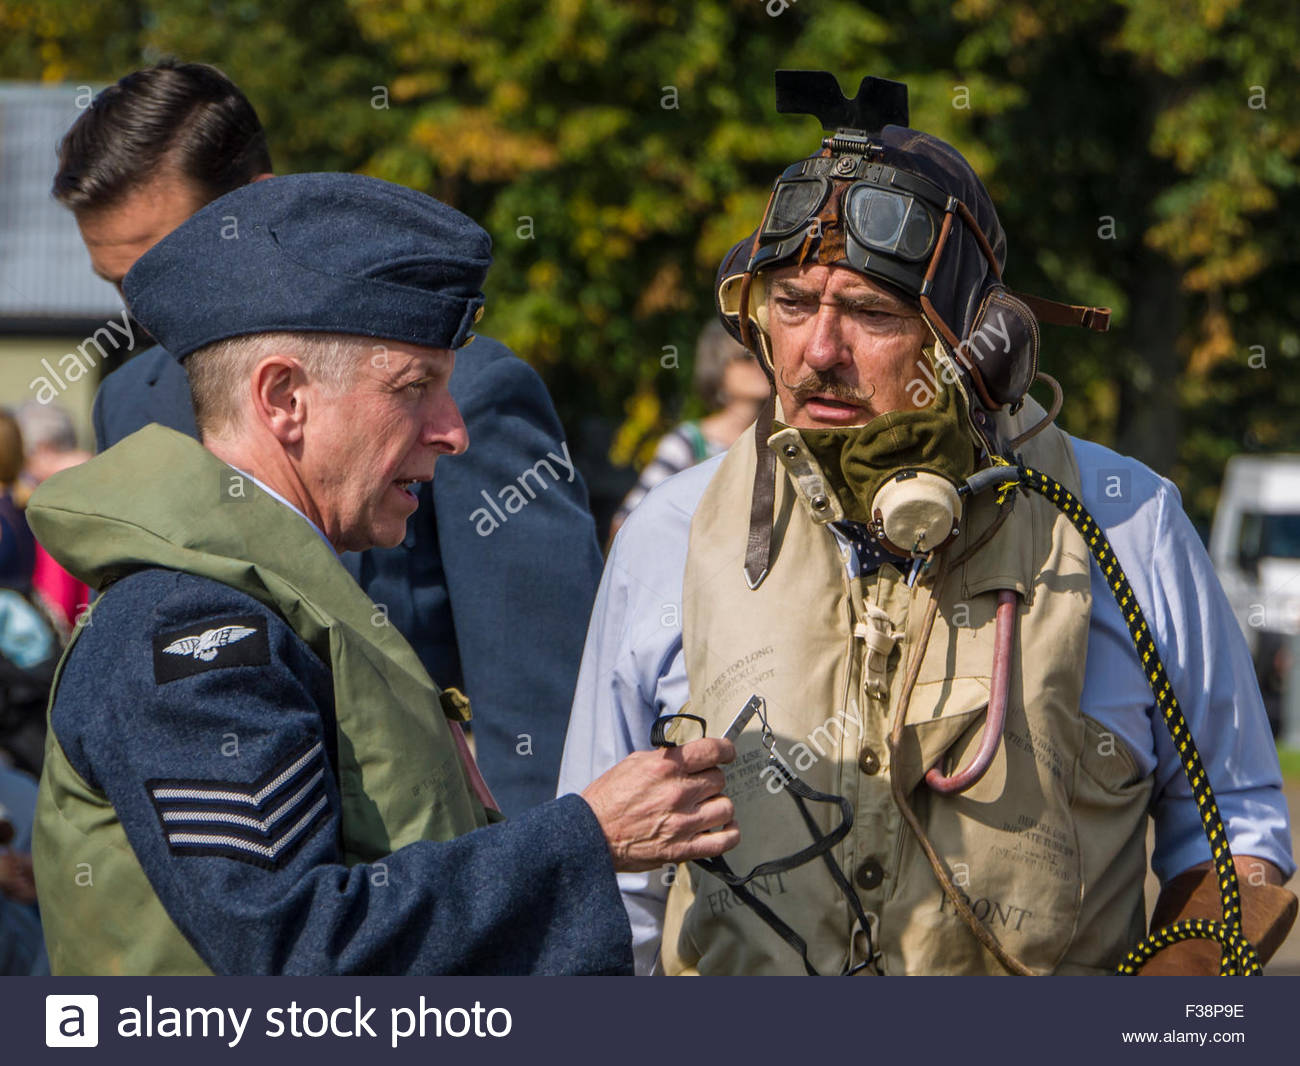 Duxford Battle of Britain 2015 Pilot Airman and 1940's style England UK - Stock Image